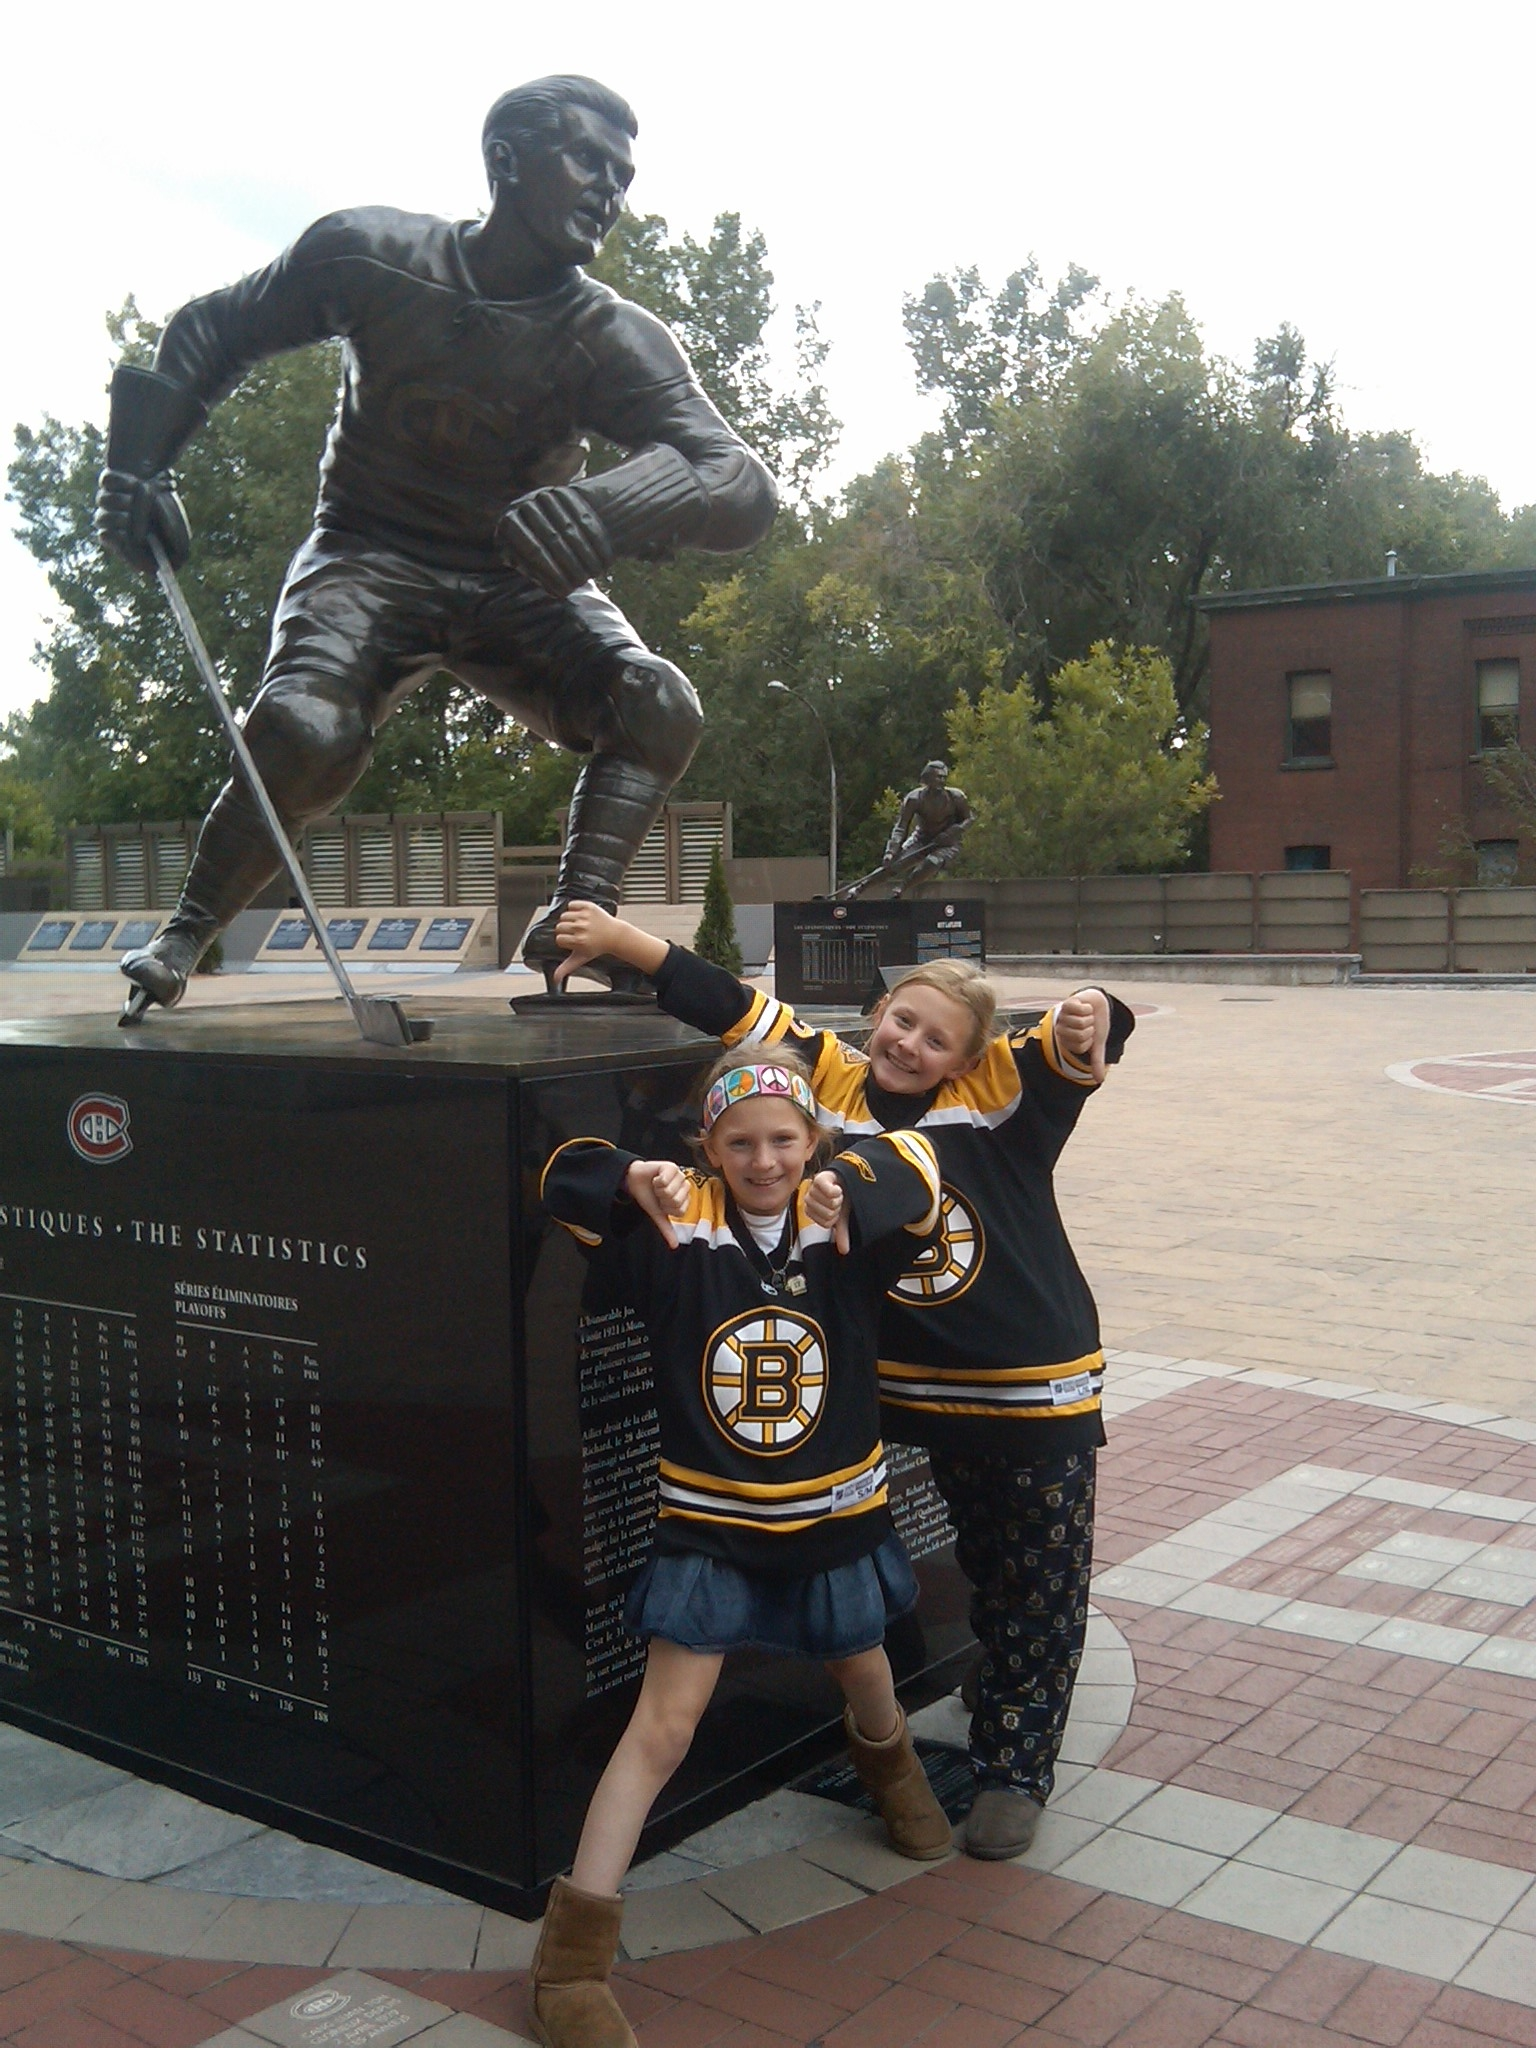 No Better Way to Kick Off Bruins Preseason Than to Journey Across Enemy Lines